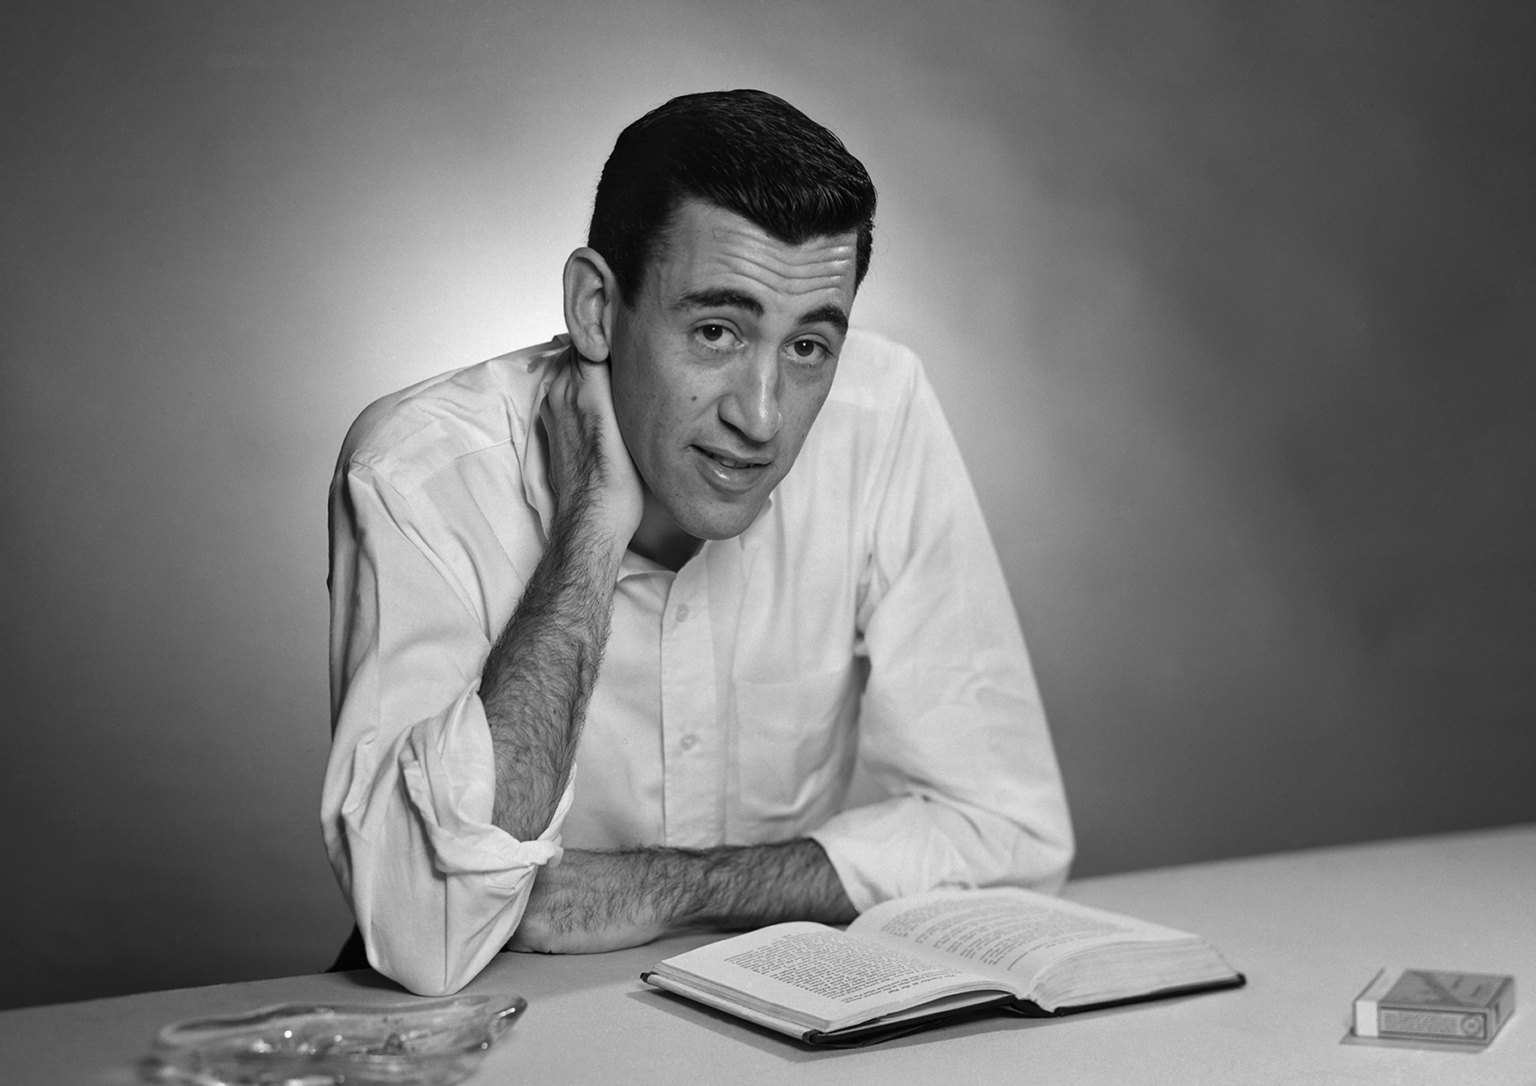 a biography of jd salinger essay Jd salinger research papers analyze the american author jd salinger, best remembered as the writer of catcher in the rye.